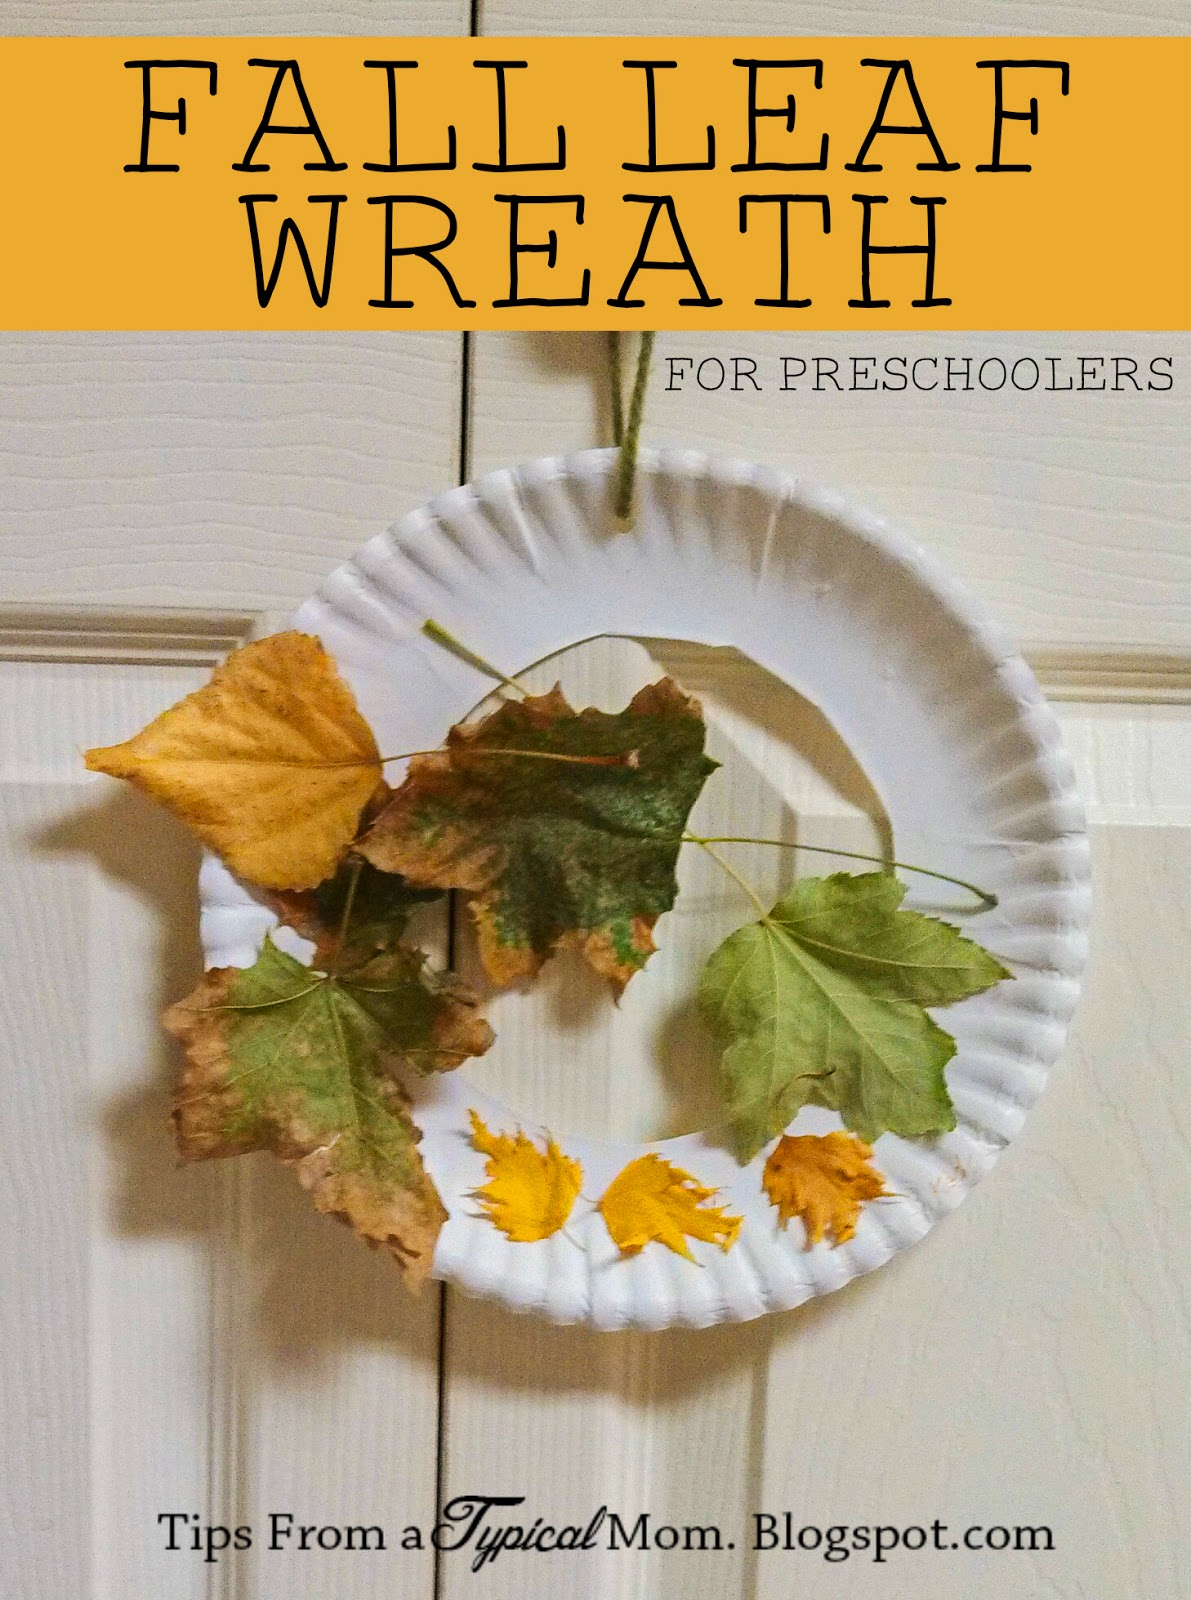 fall leaf wreath for preschoolers tips from a typical mom